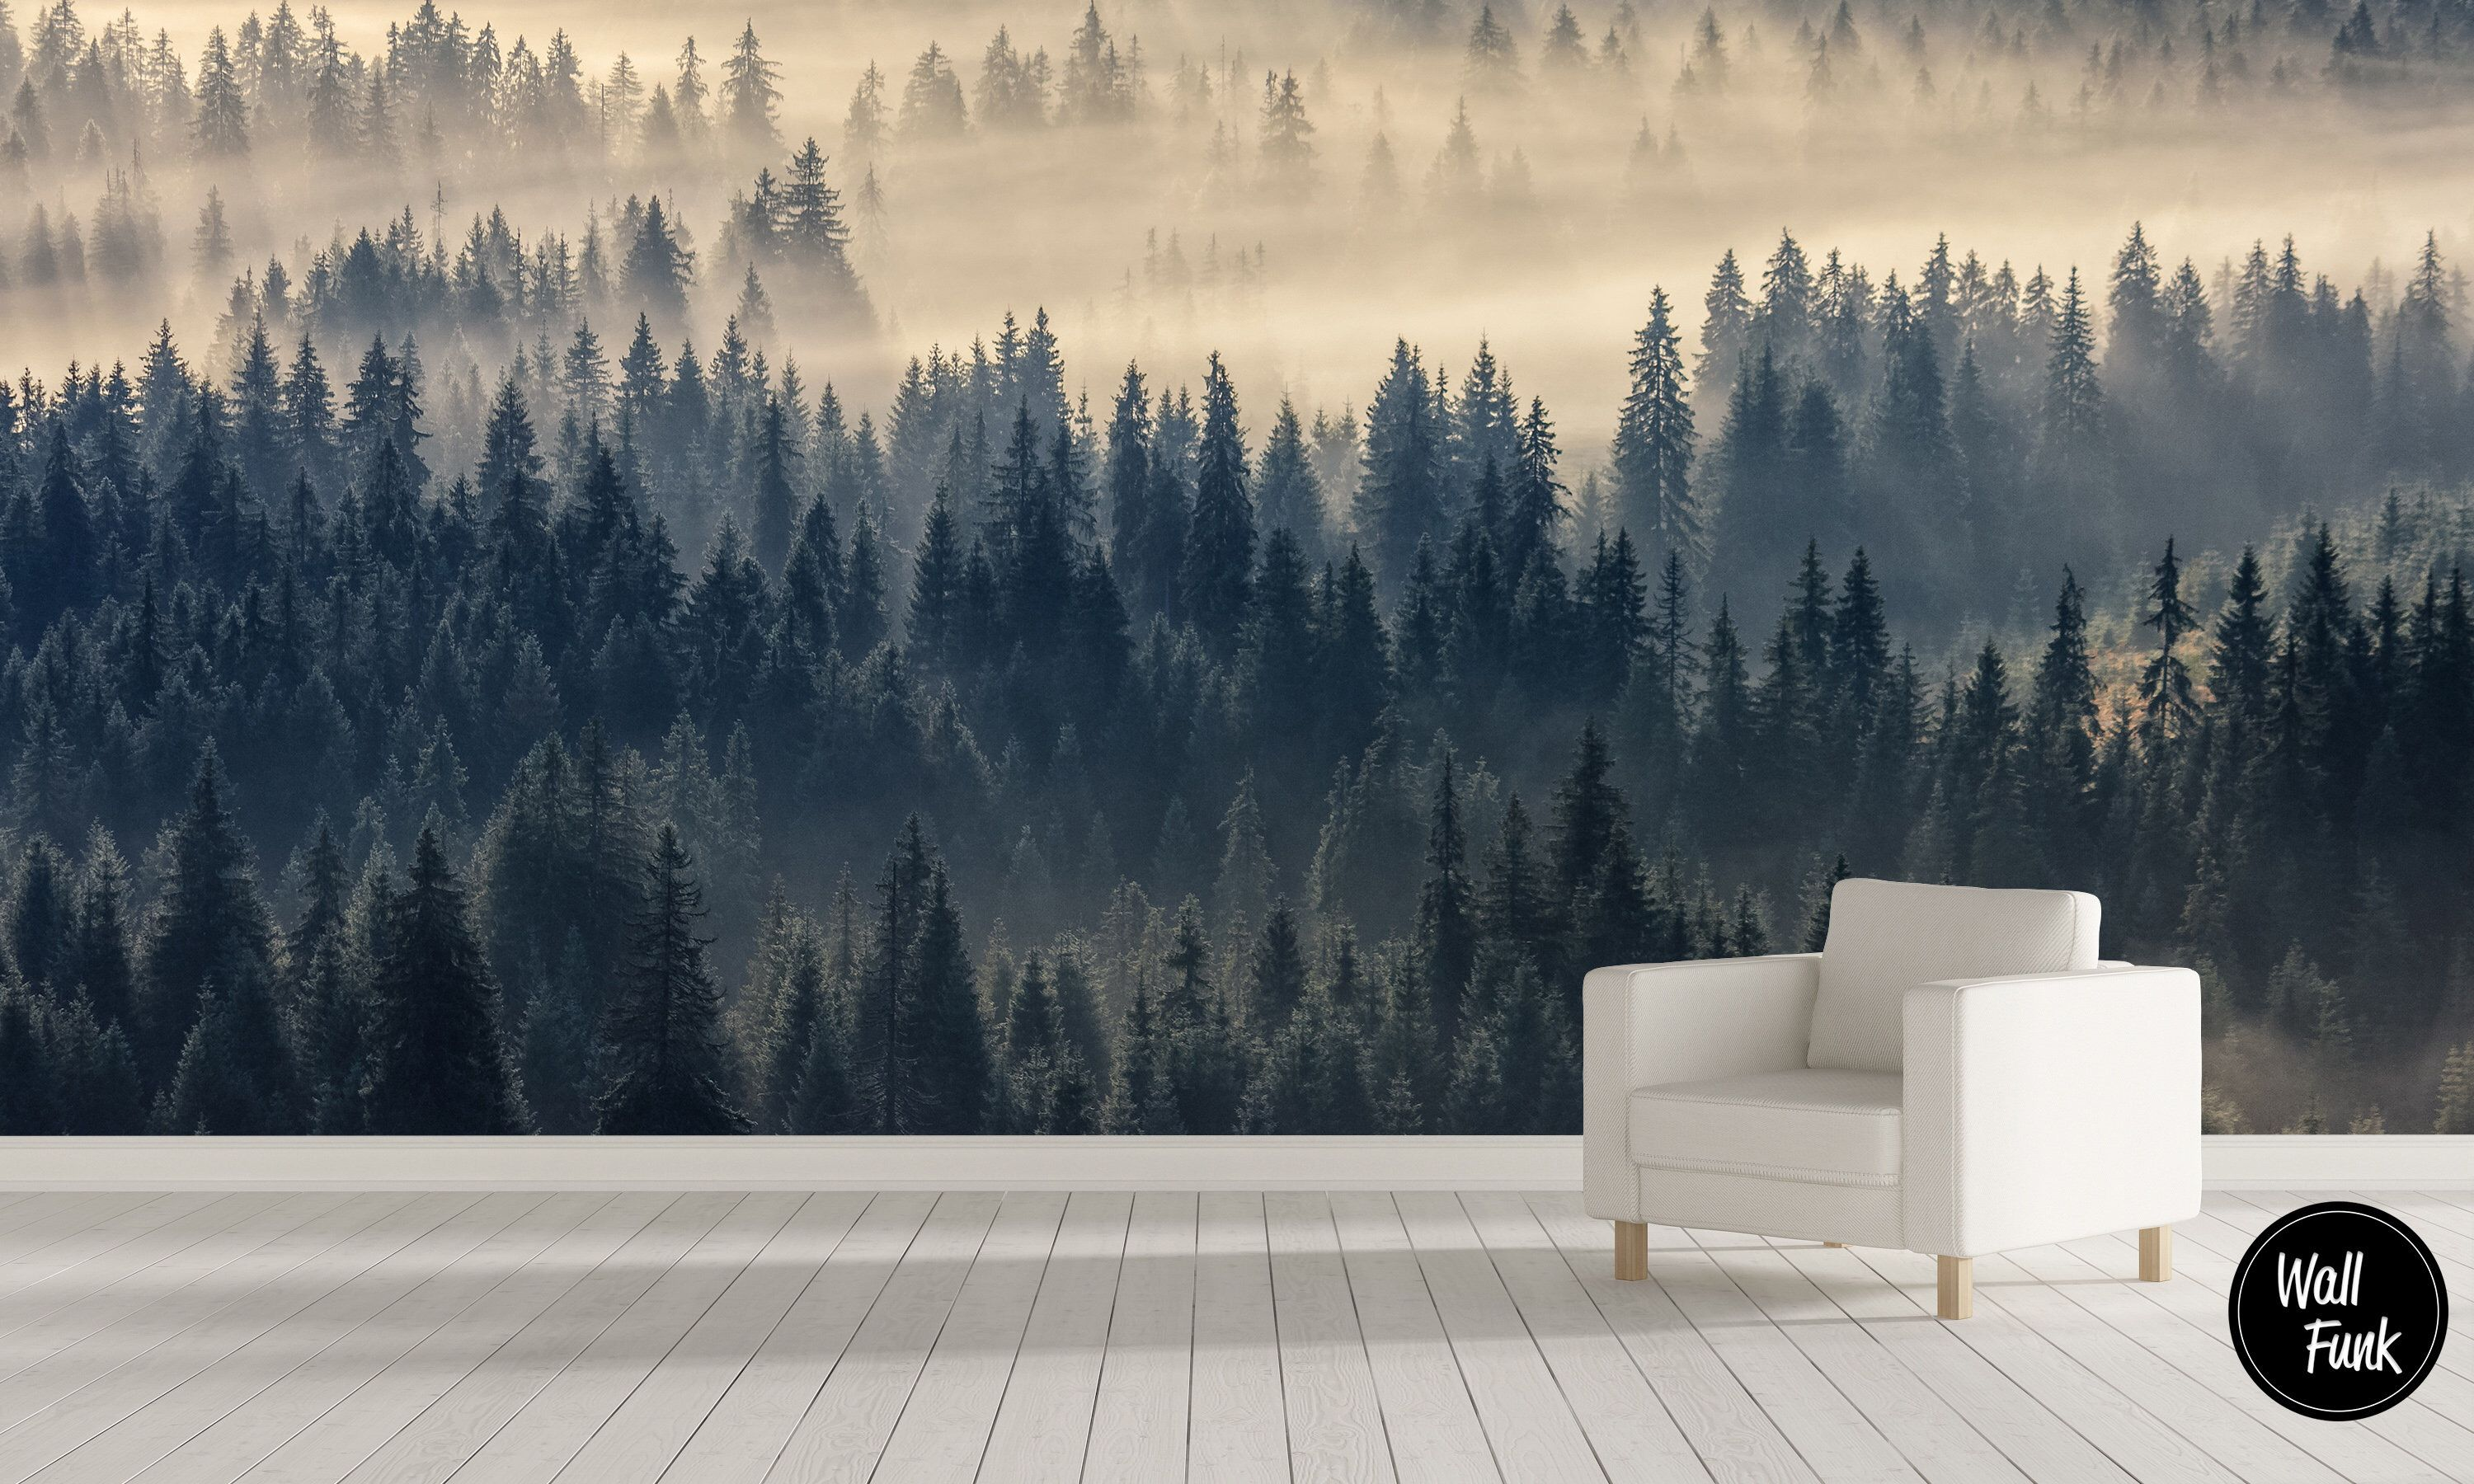 Removable Nature Wallpaper Water Activated Temporary Stick On Etsy Forest Mural Wall Wallpaper Stick On Wallpaper